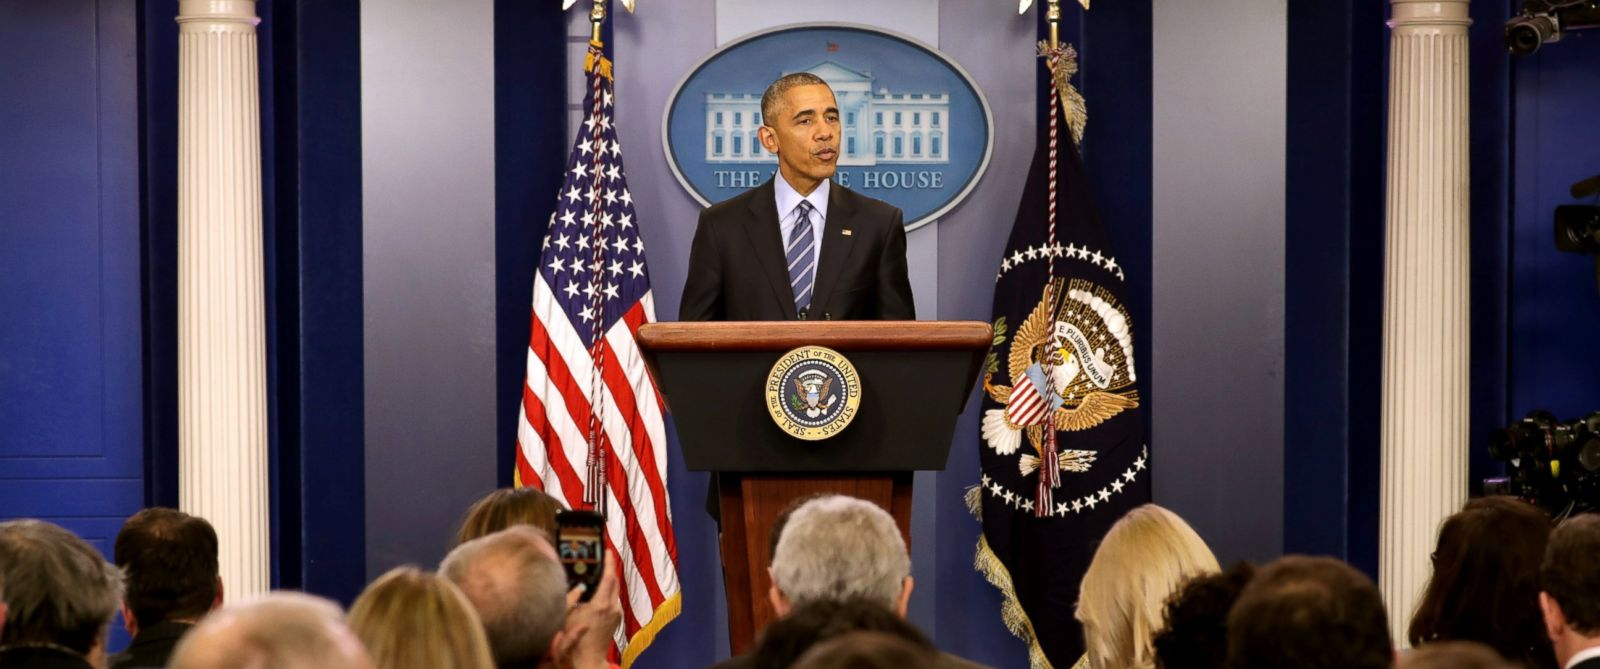 PHOTO: President Barack Obama speaks during a news conference in the Brady Press Briefing Room at the White House, Dec. 16, 2016 in Washington.